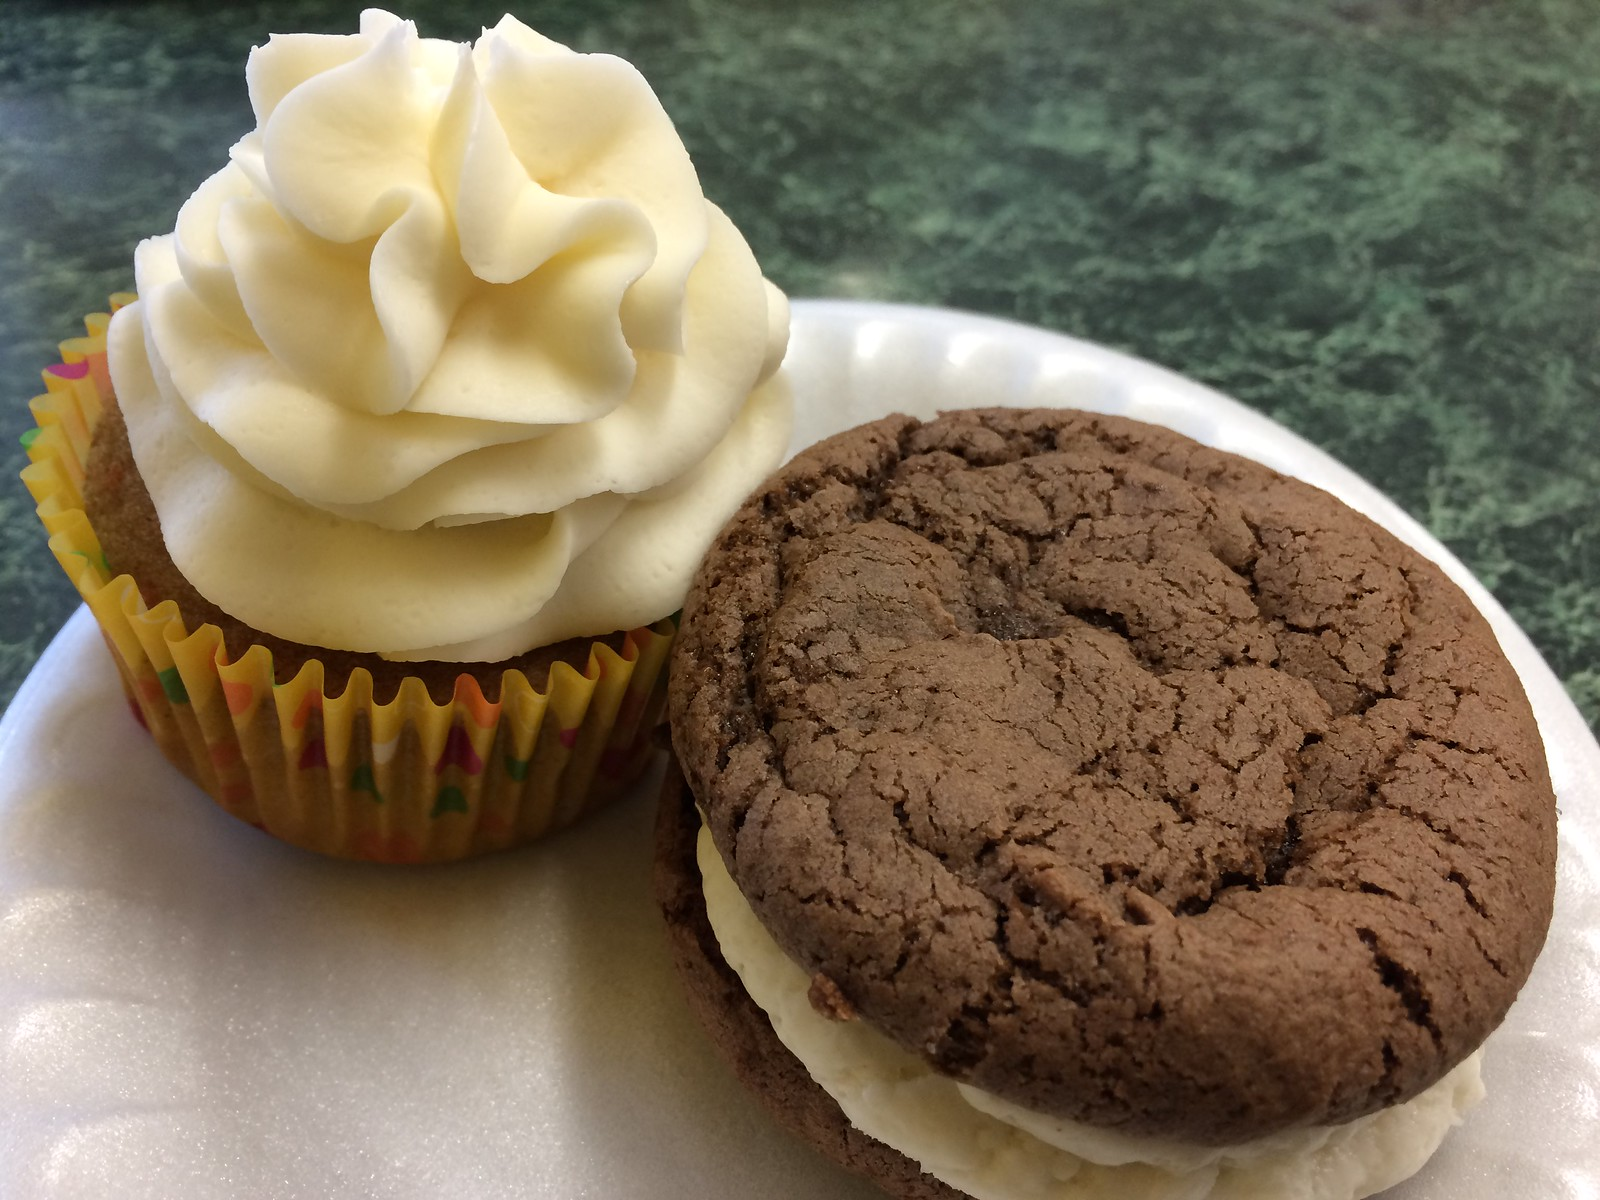 Susie's Cafe & Baked Goods